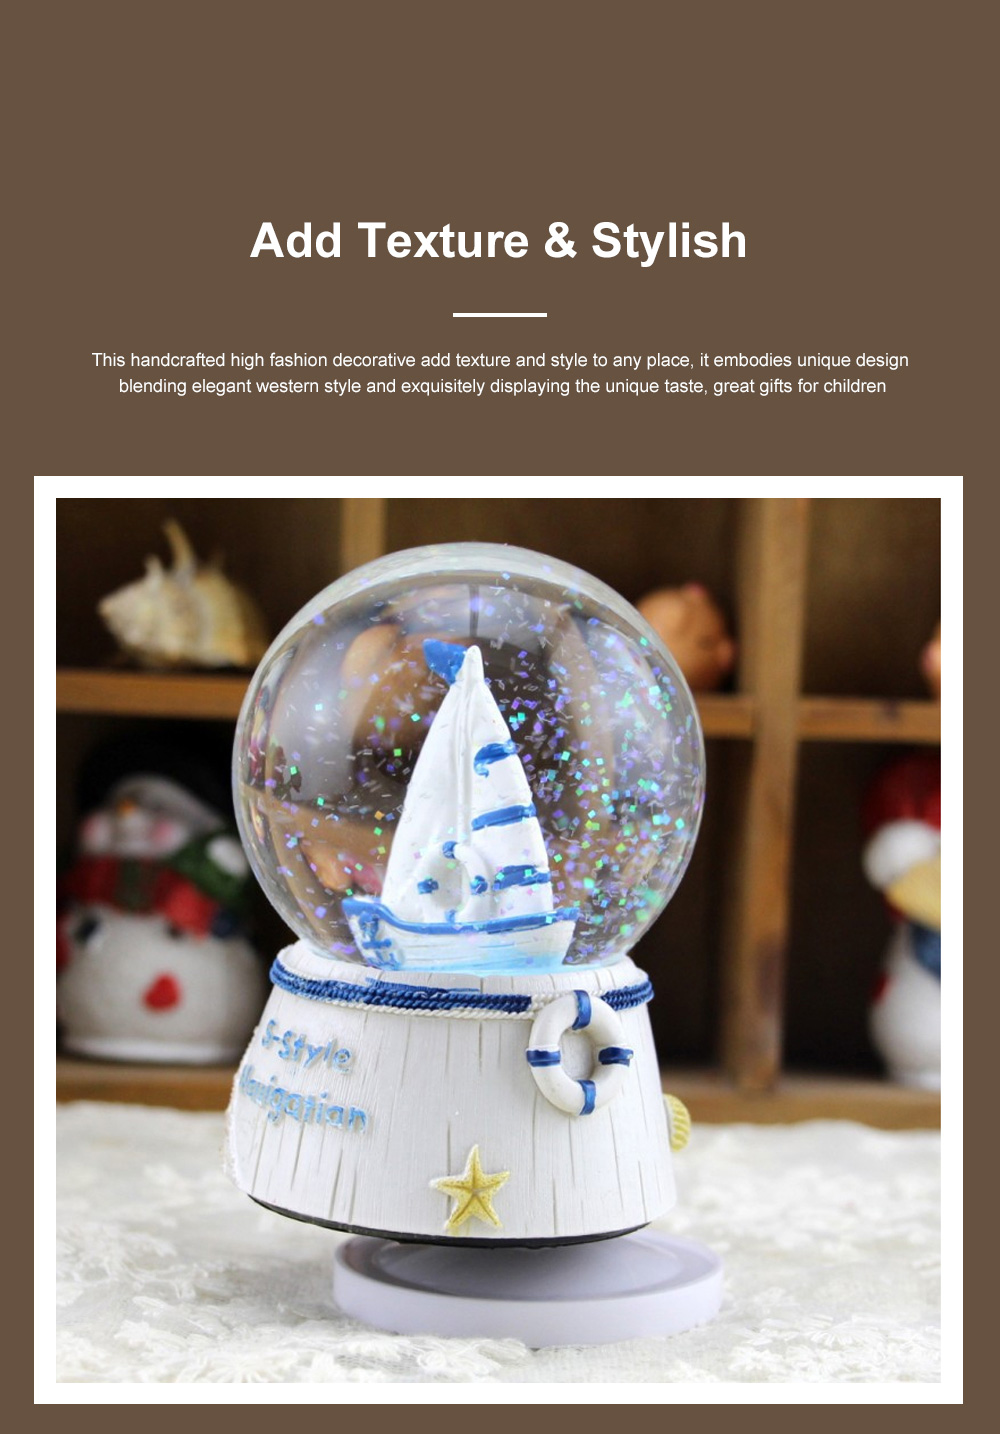 Mini Sailing Lighthouse Crystal Ball LED Base 3D Crystal Ball Night Light with Stand 5 Colors Change for Kids Baby Bedroom Decor Birthday Gift Snow Global Musical Box 2